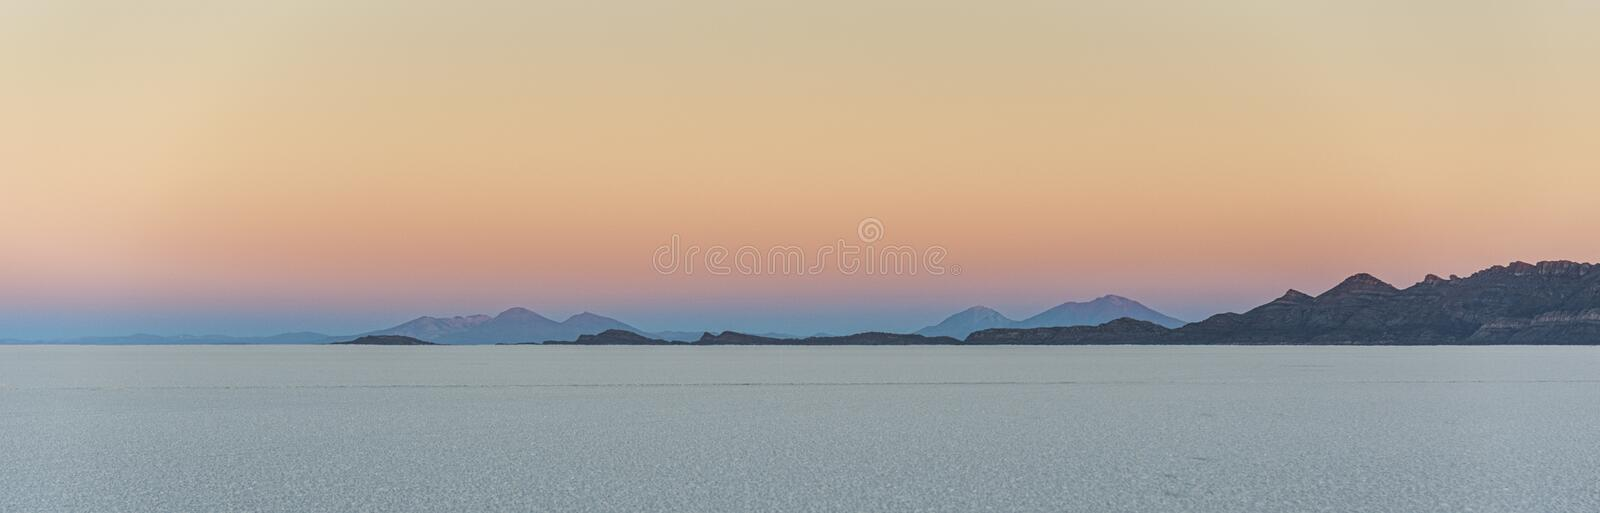 The world`s largest salt flat, Salar de Uyuni in Bolivia, photographed at sunrise stock image